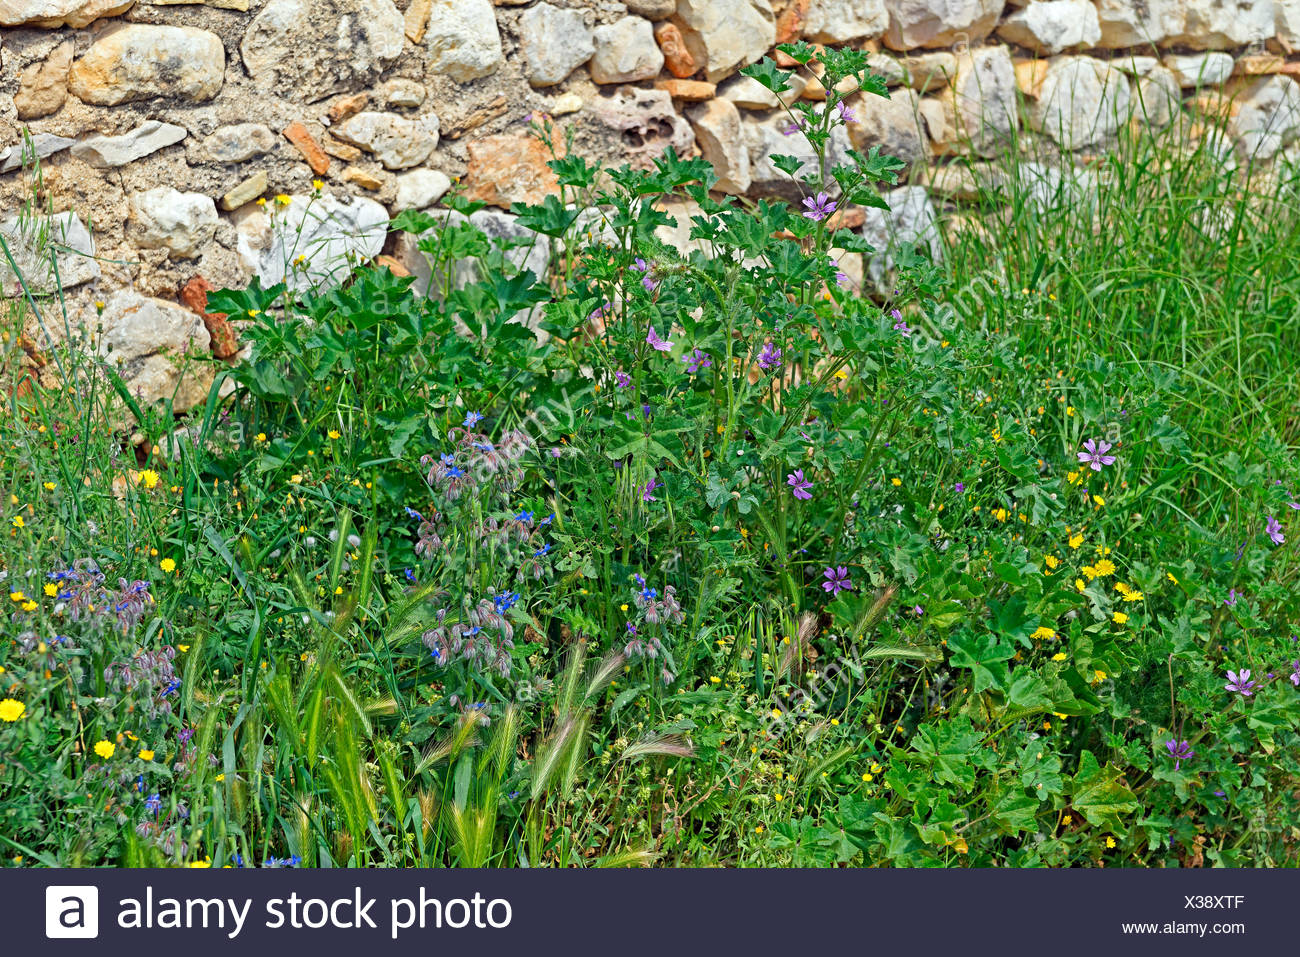 More poorly,natural stone,wild flowers,blossoms, - Stock Image